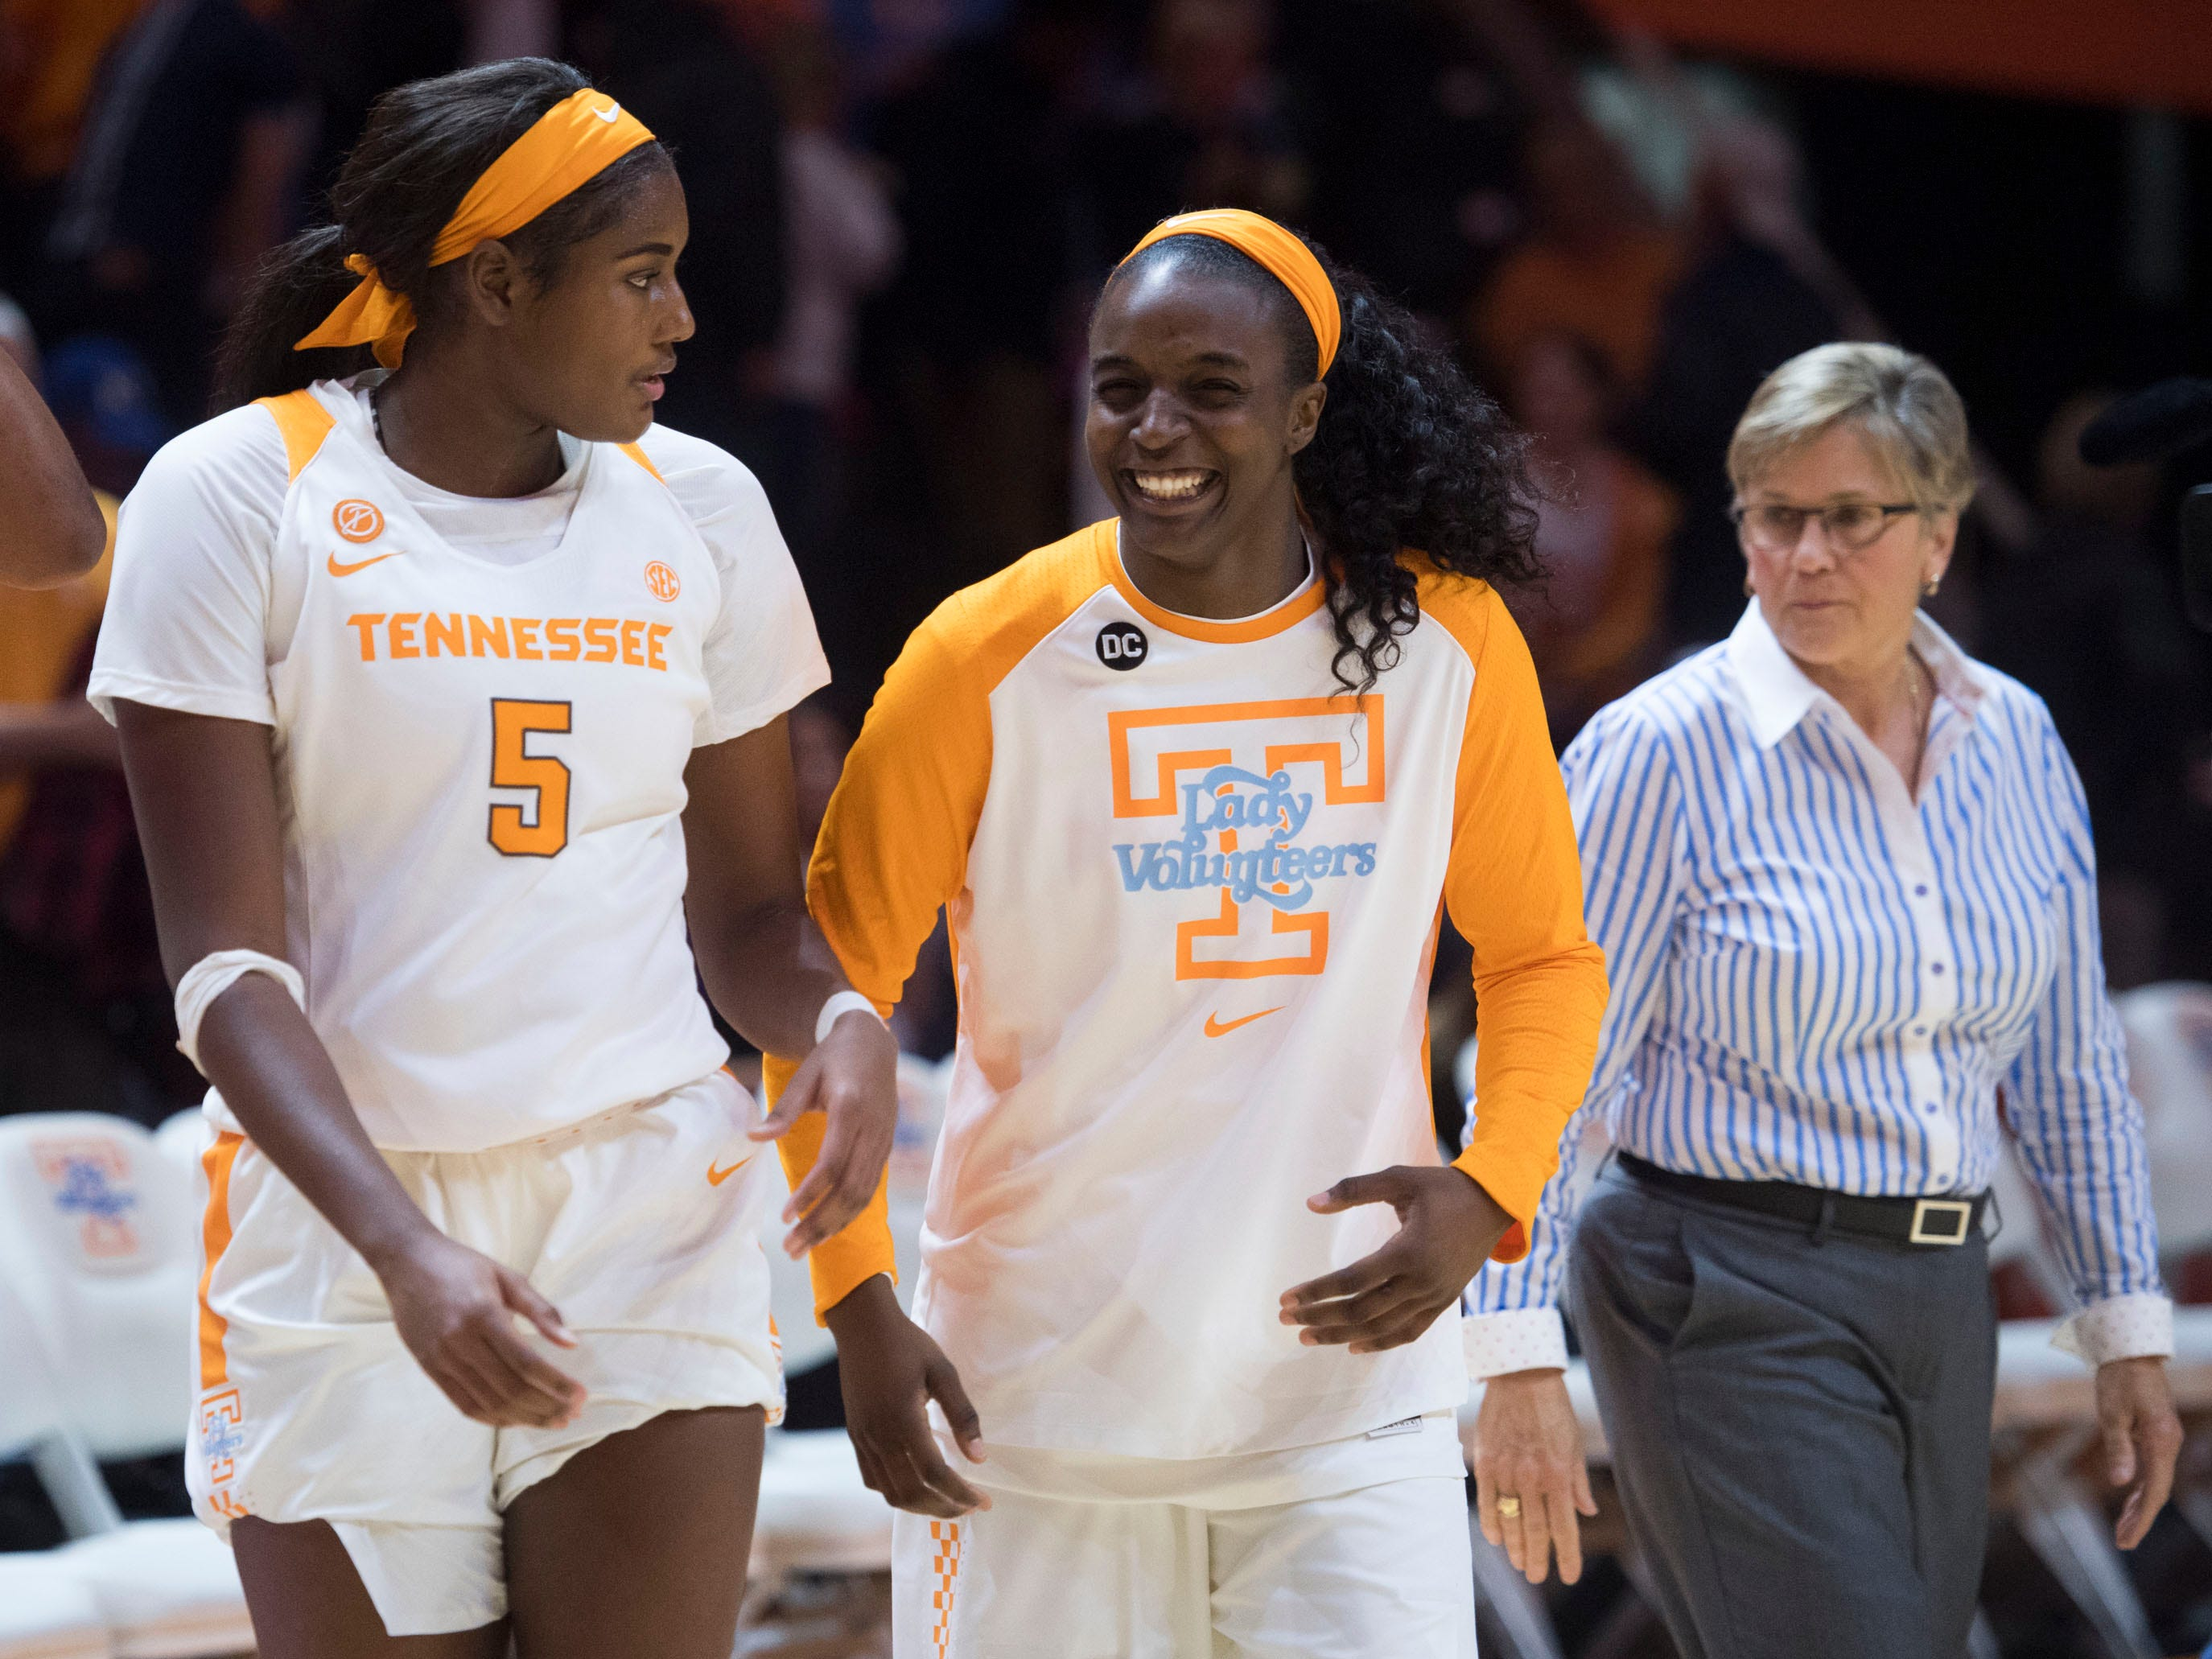 Tennessee's Kamera Harris (5) and Meme Jackson (10) walk onto the court after the 97-49 win over Presbyterian on Sunday, November 11, 2018.